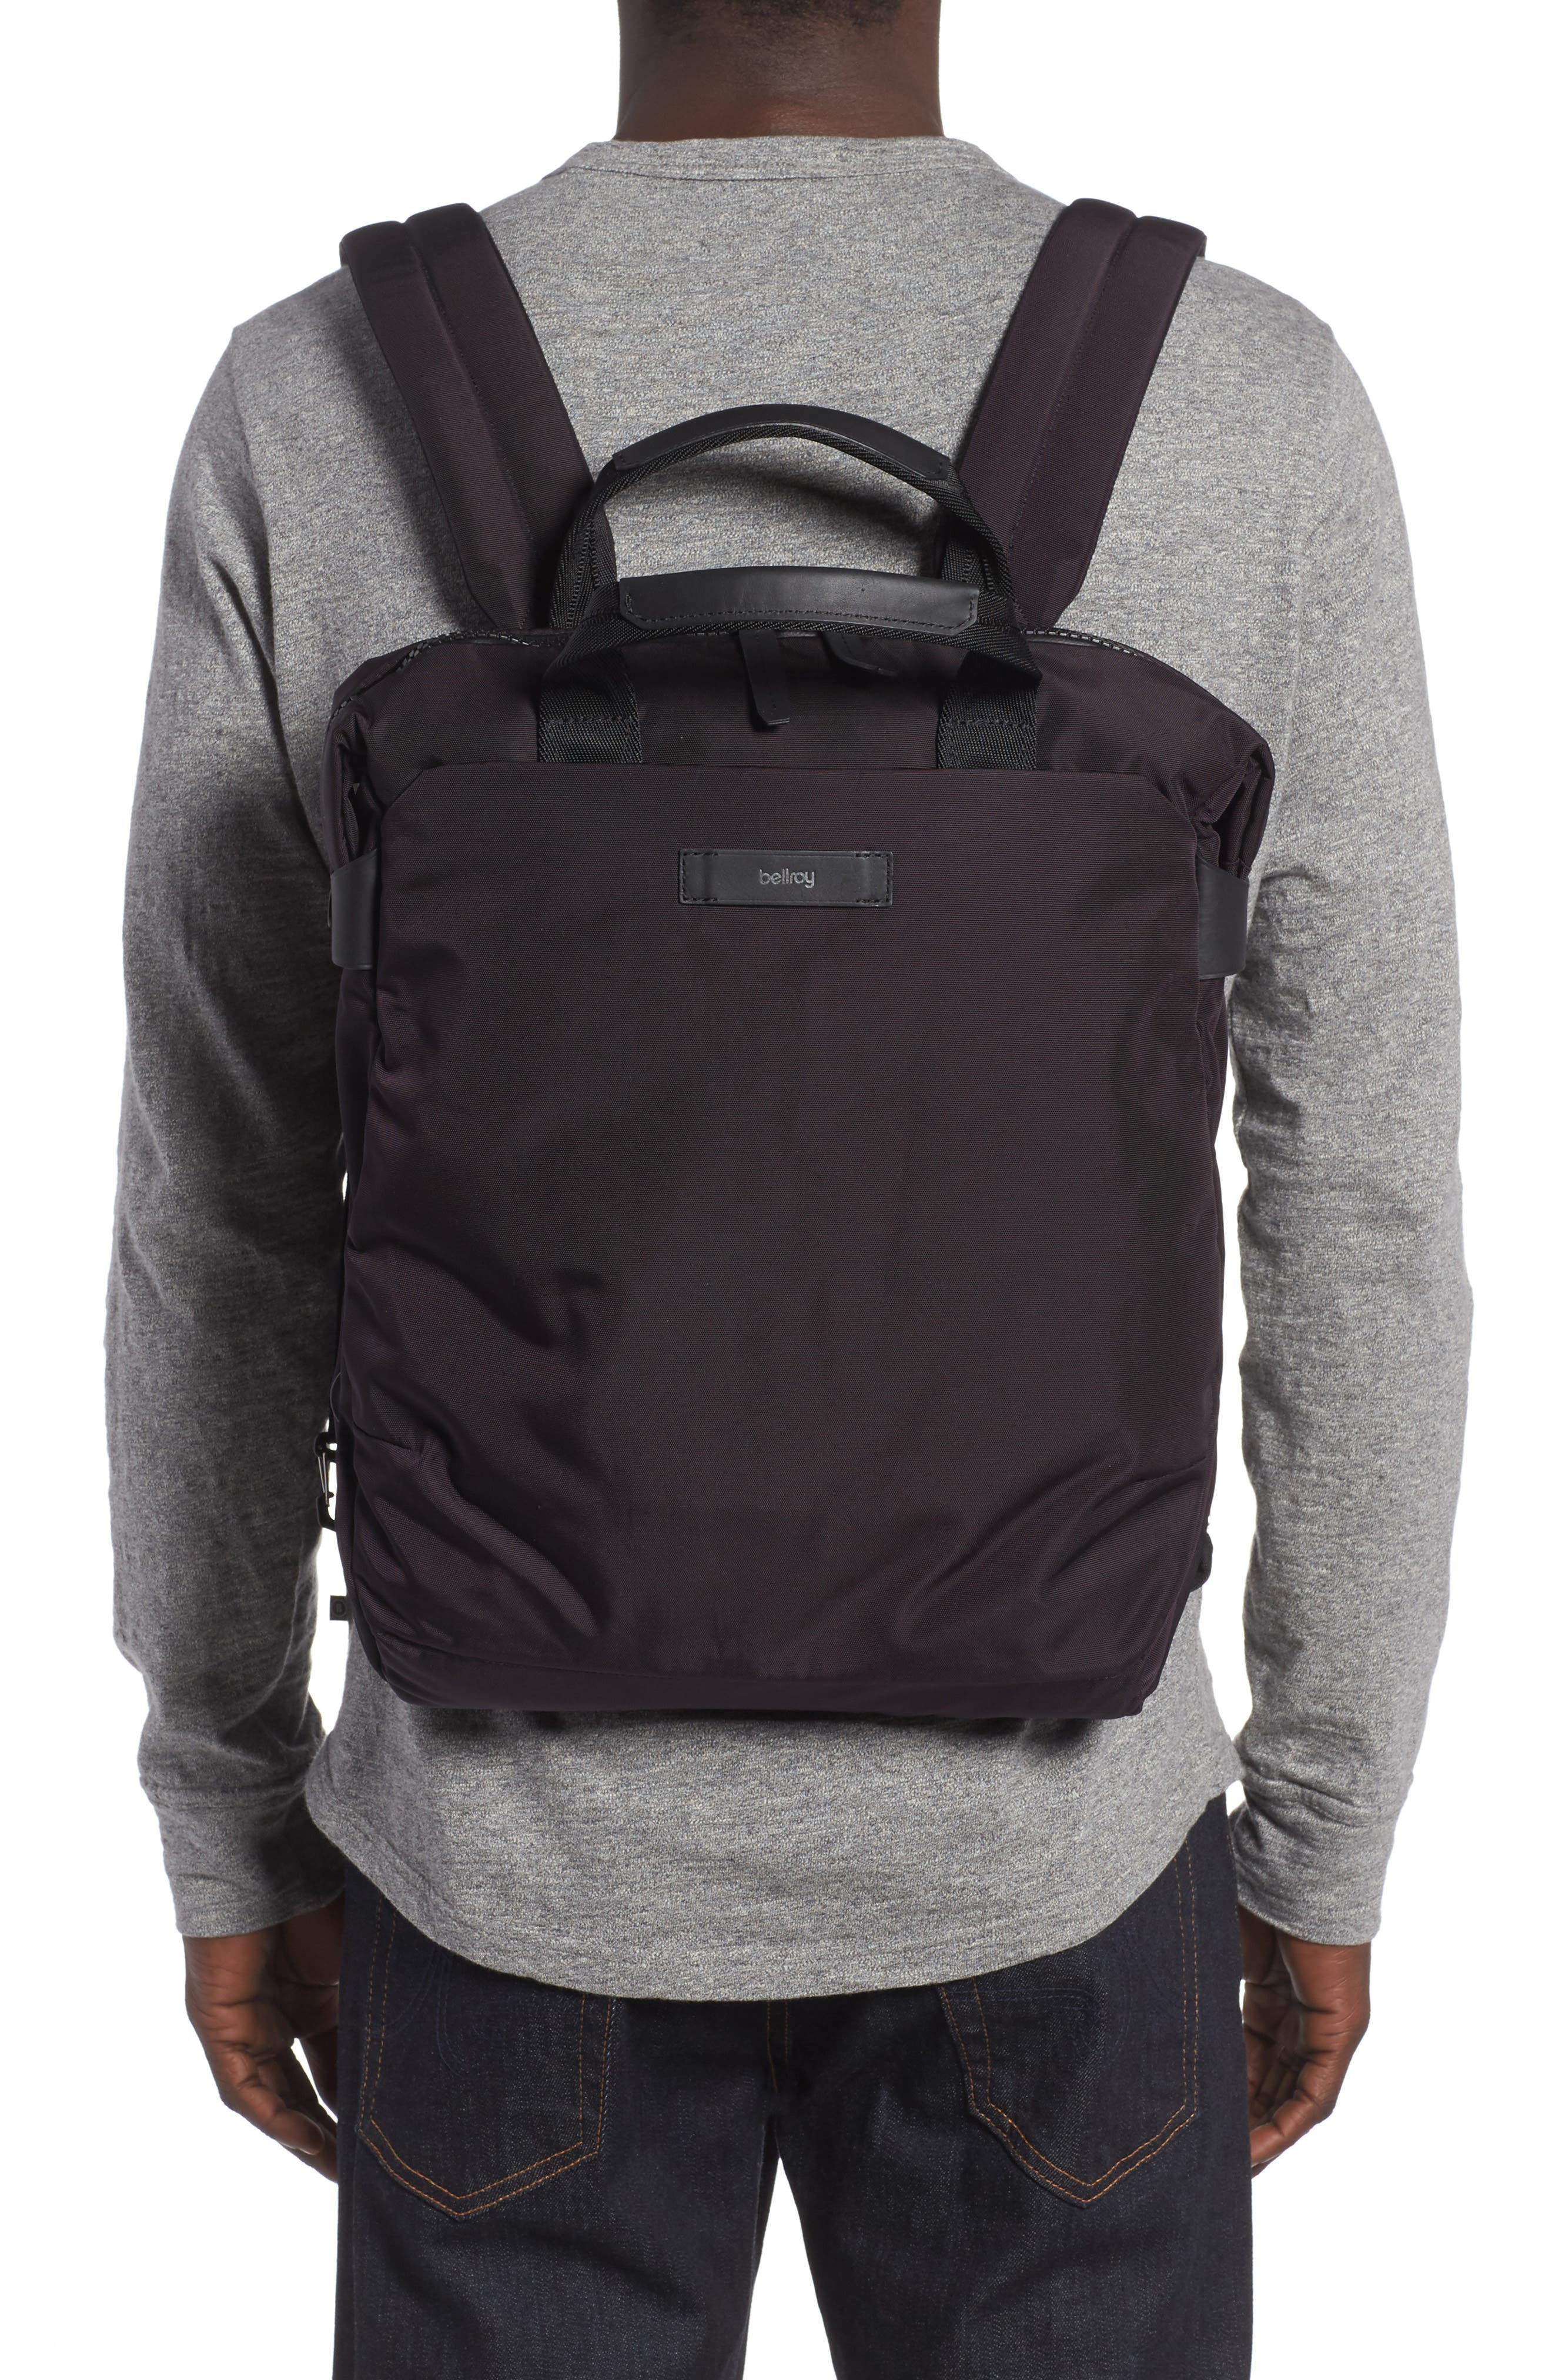 Duo Convertible Backpack,                             Alternate thumbnail 2, color,                             001